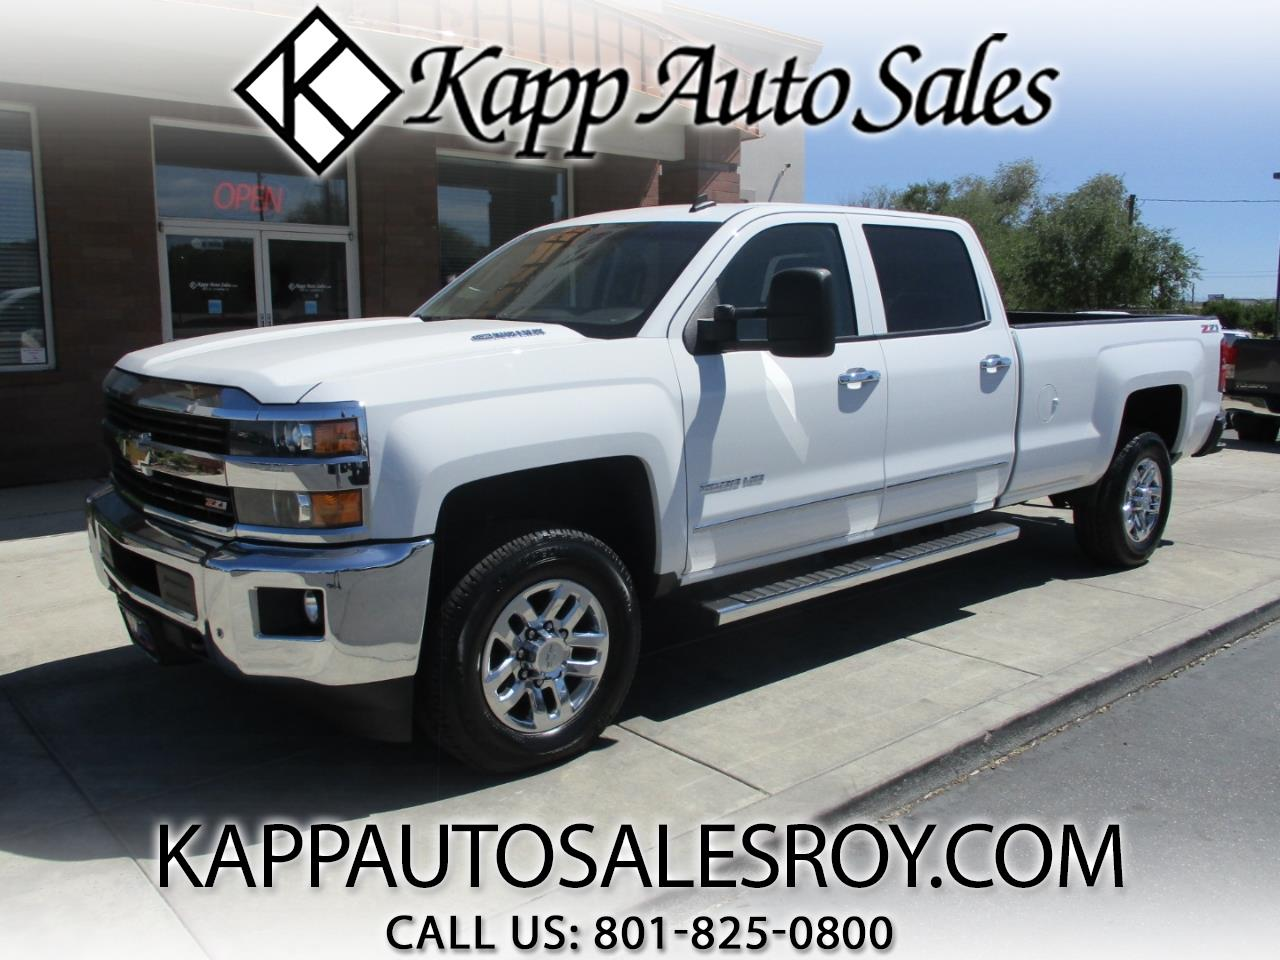 2015 Chevrolet Silverado 3500HD LTZ Crew Cab Long Box 4WD